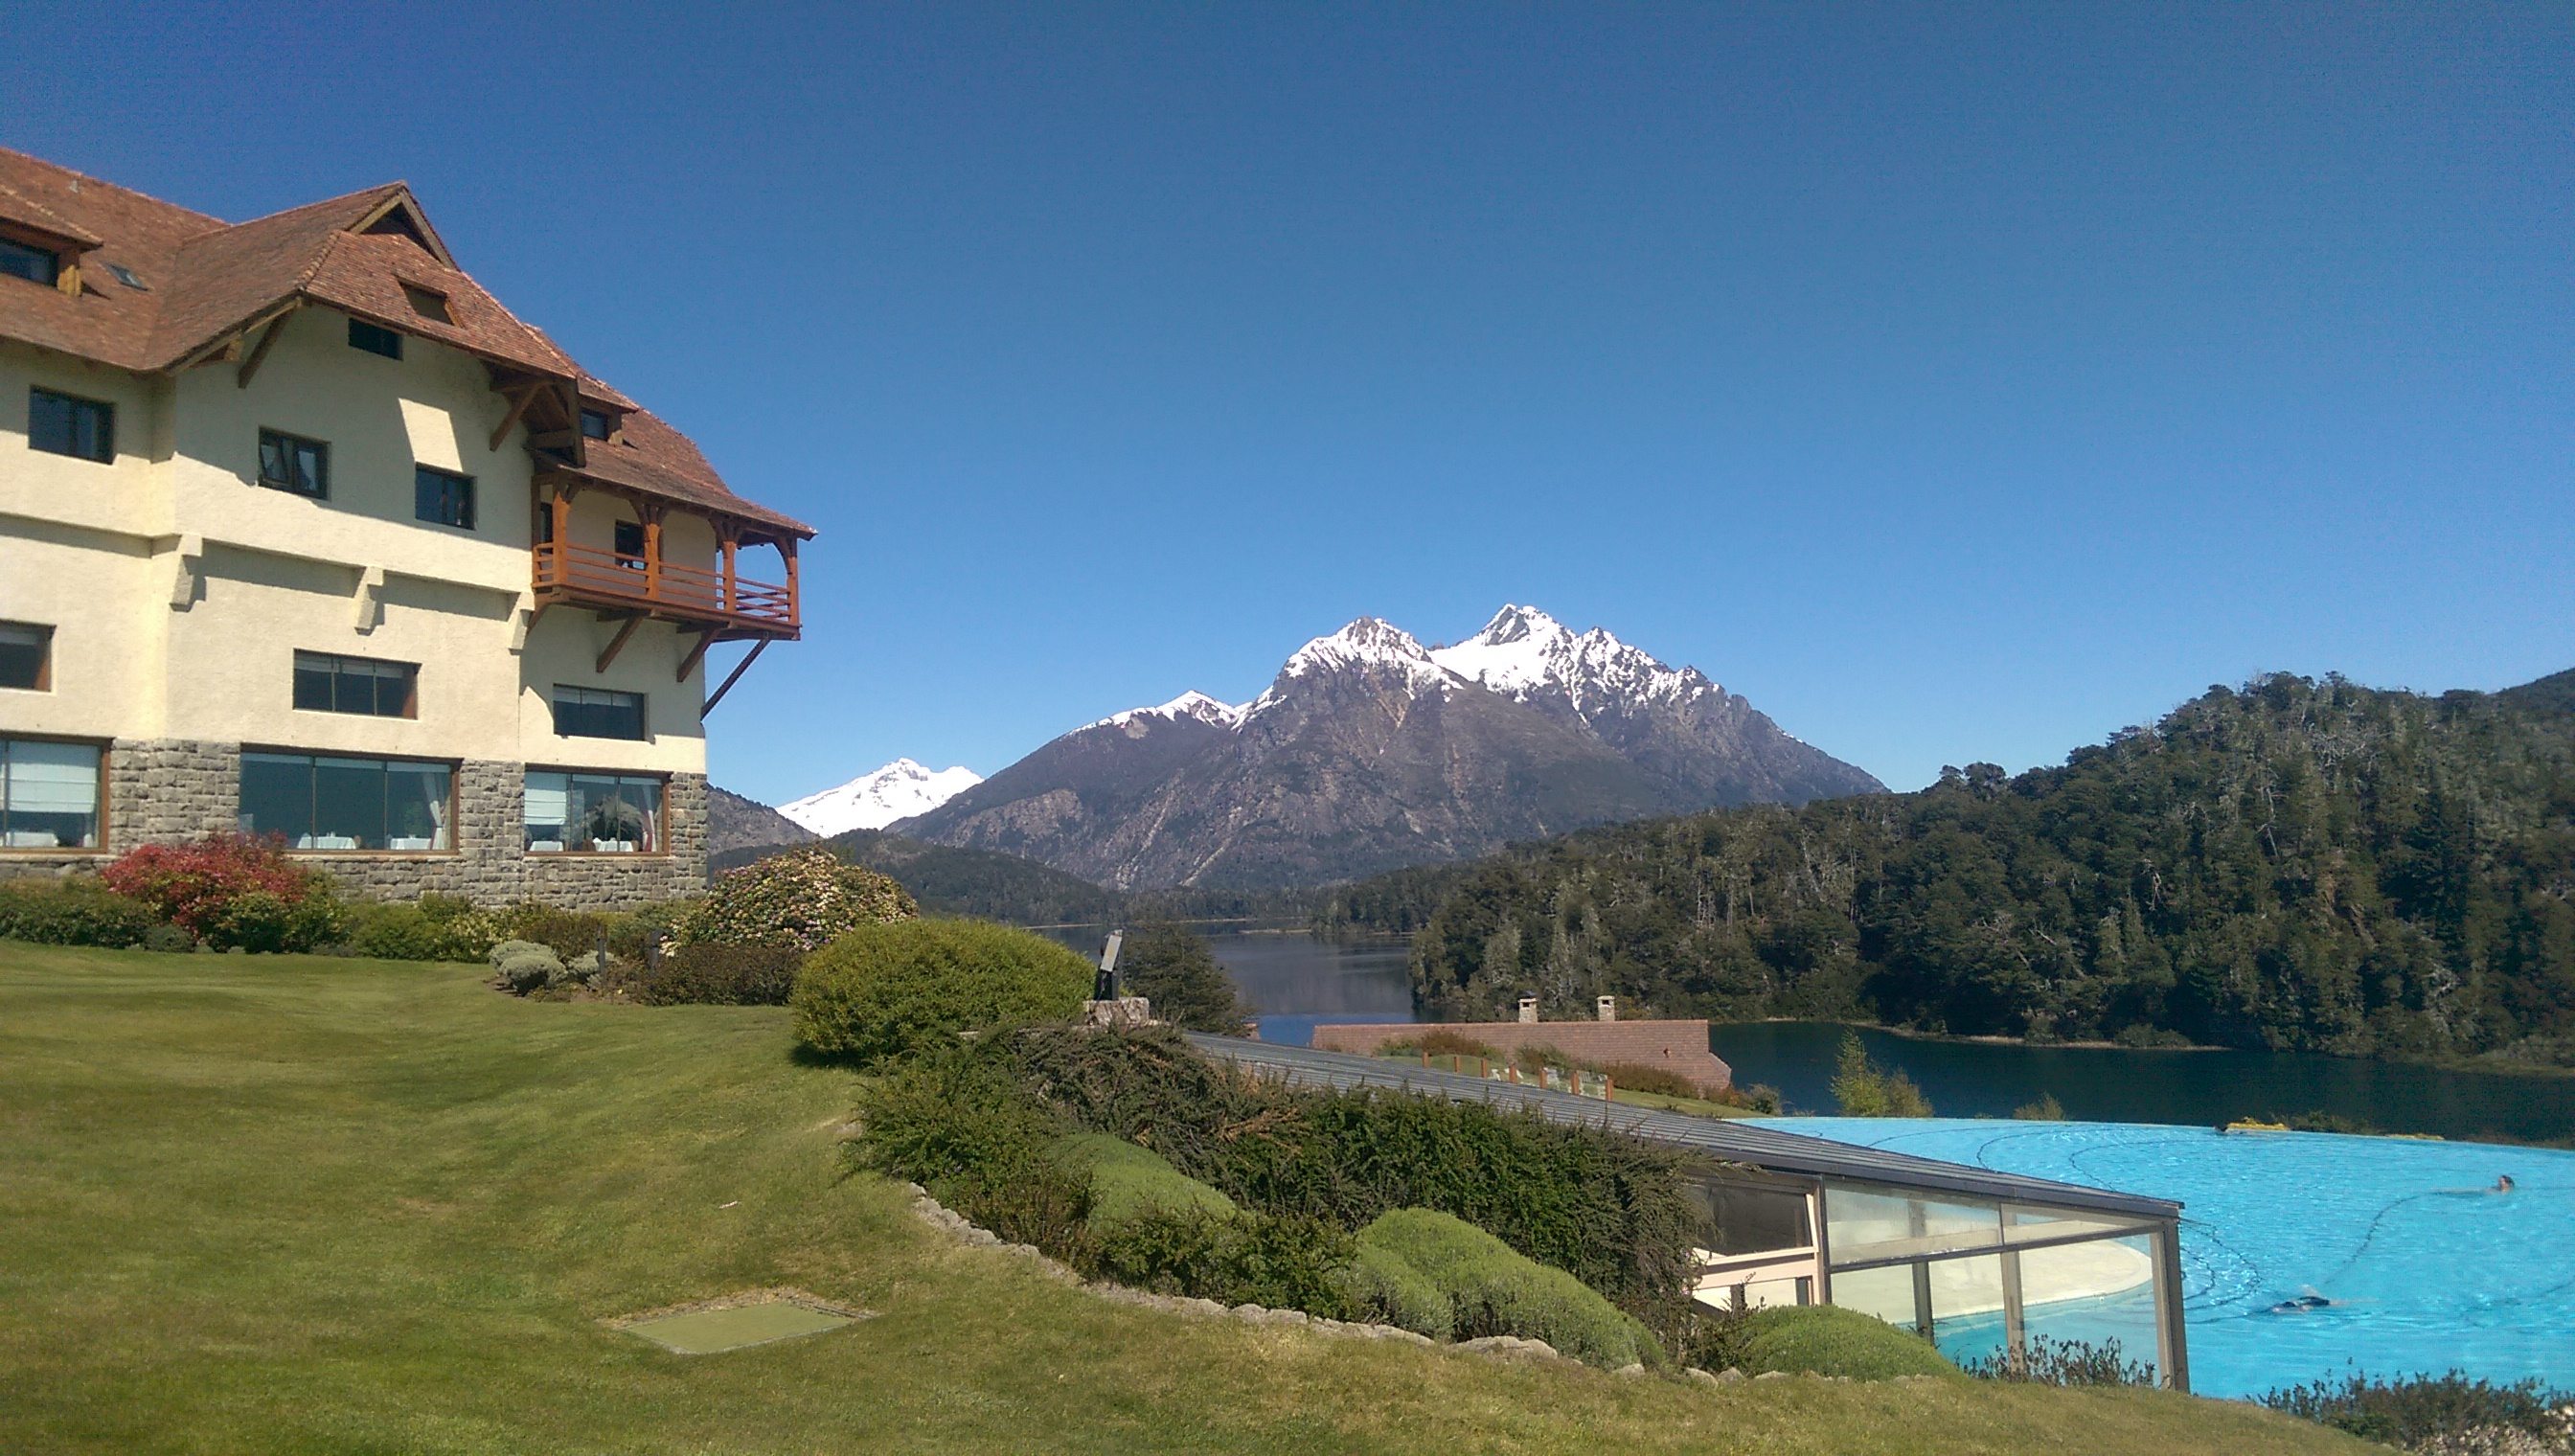 Llao Llao, Bariloche, Patagonia, Lake District, travel, Argentina, Leon Kaye